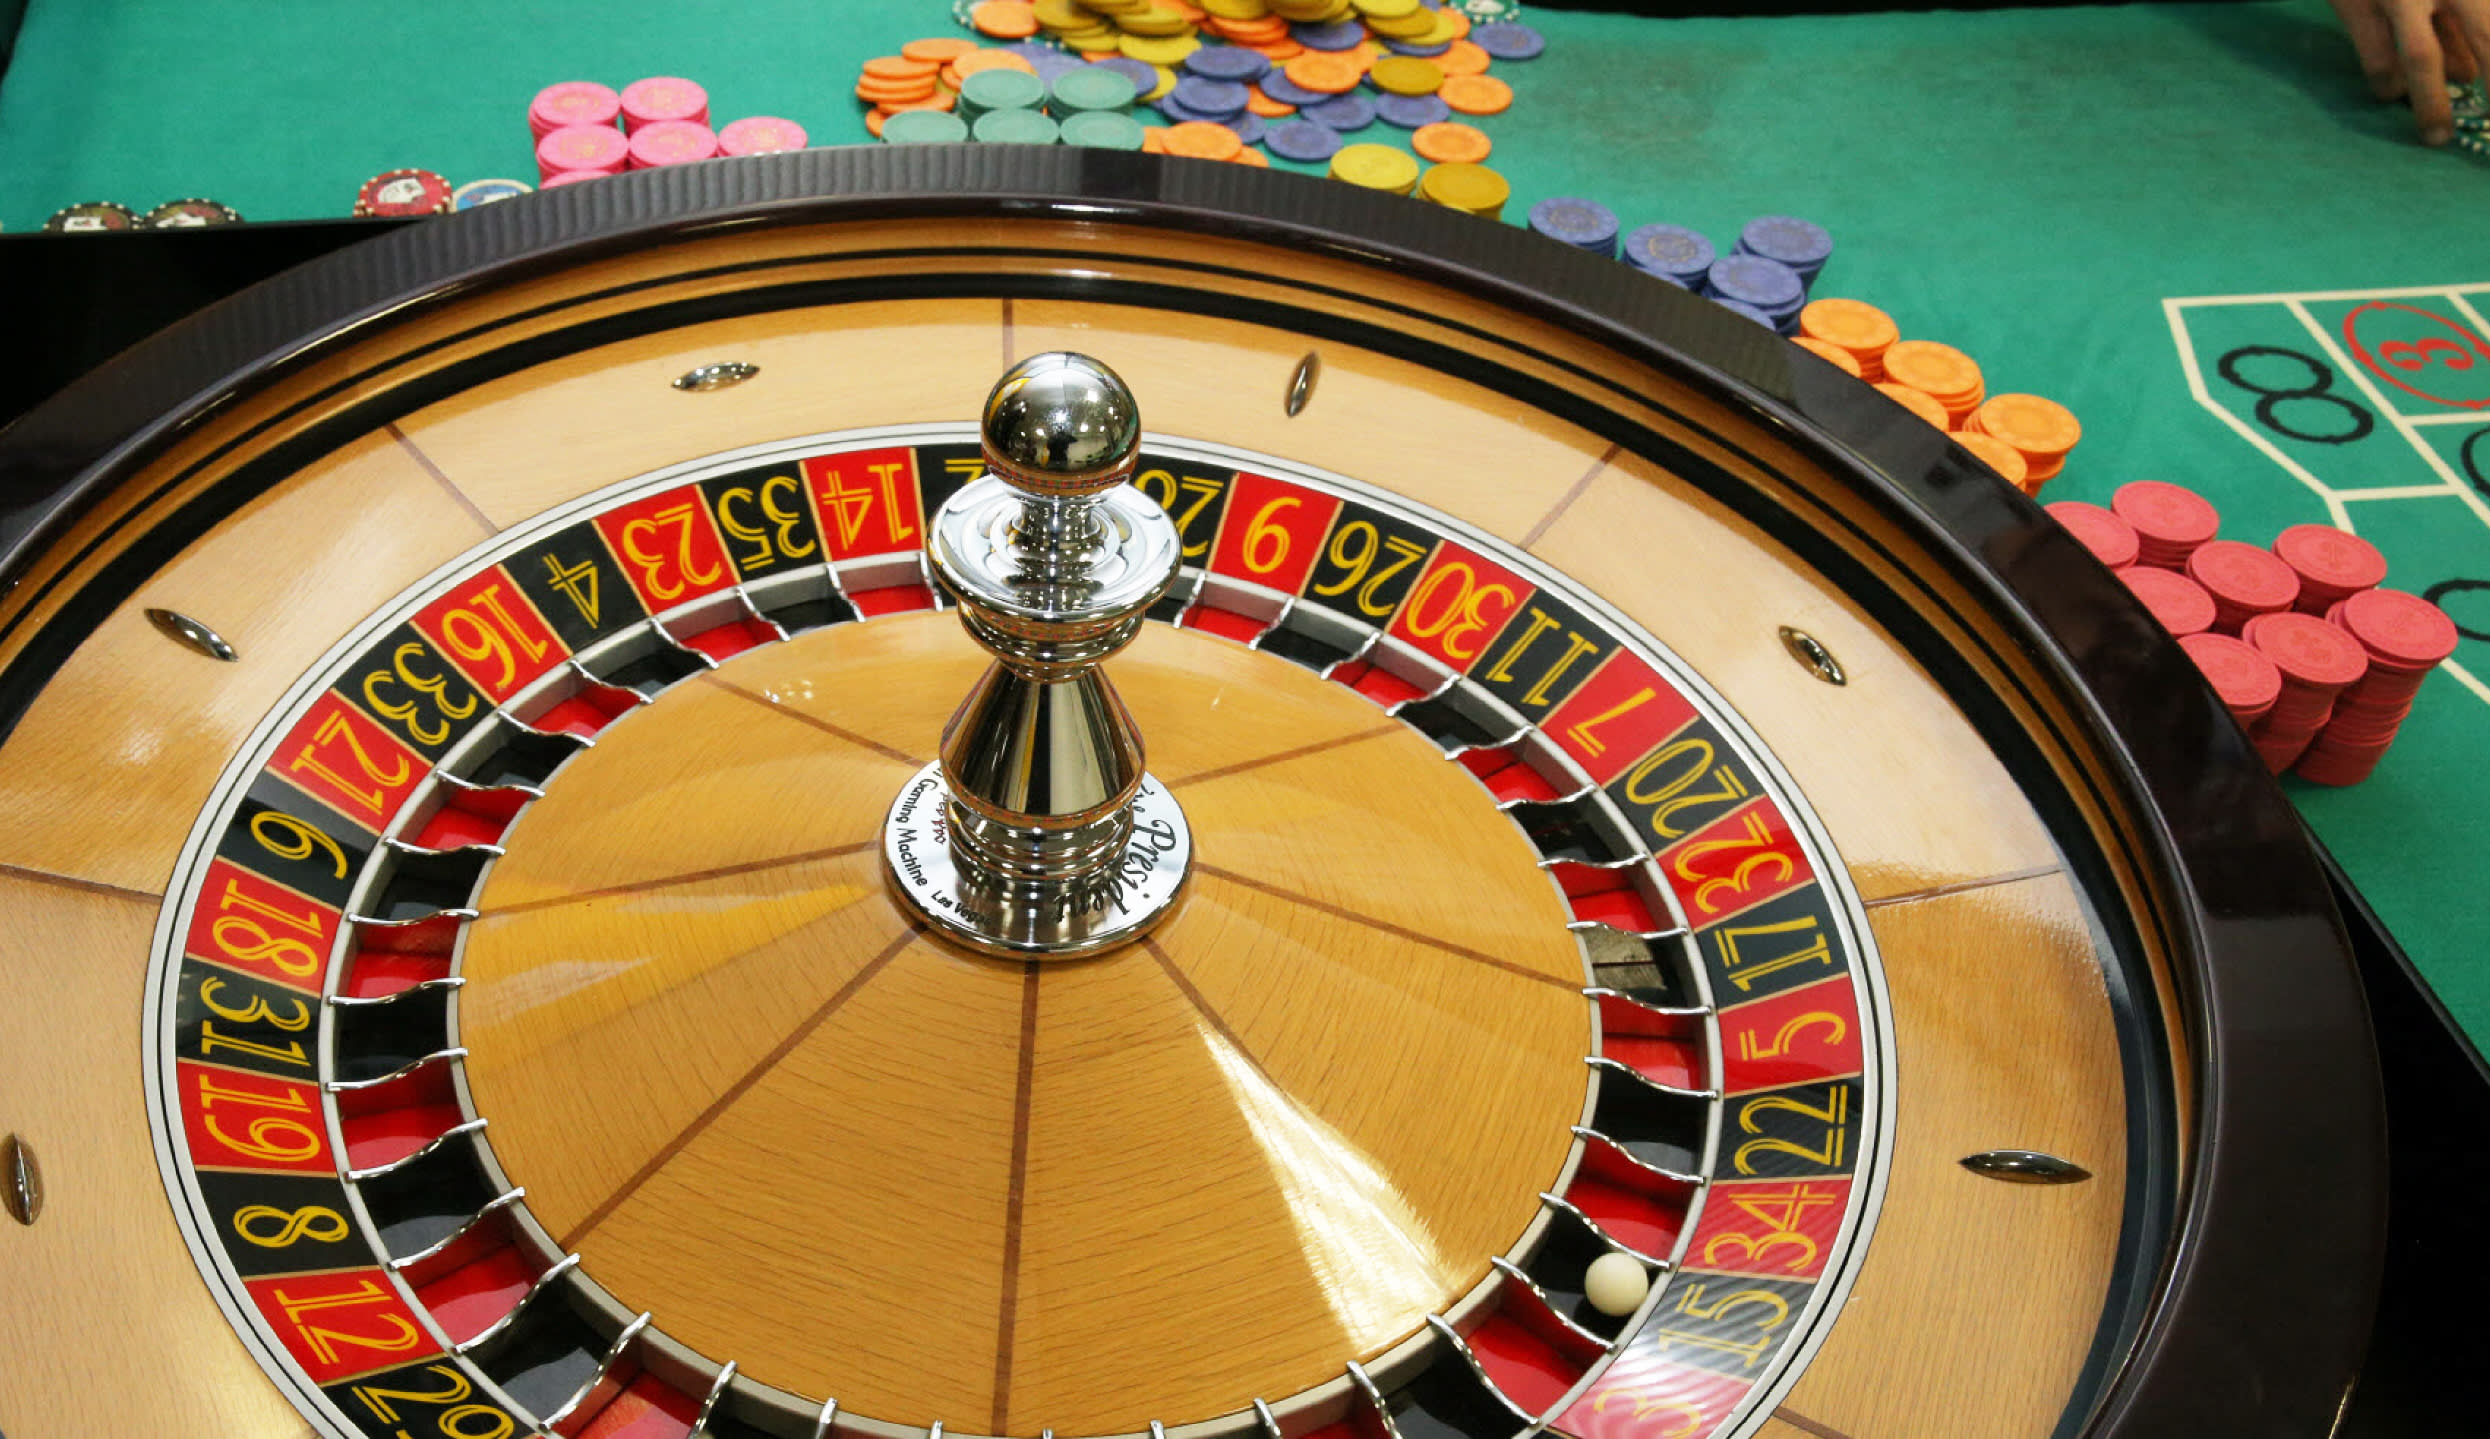 Critique and also Comparison of Casino Poker Chips